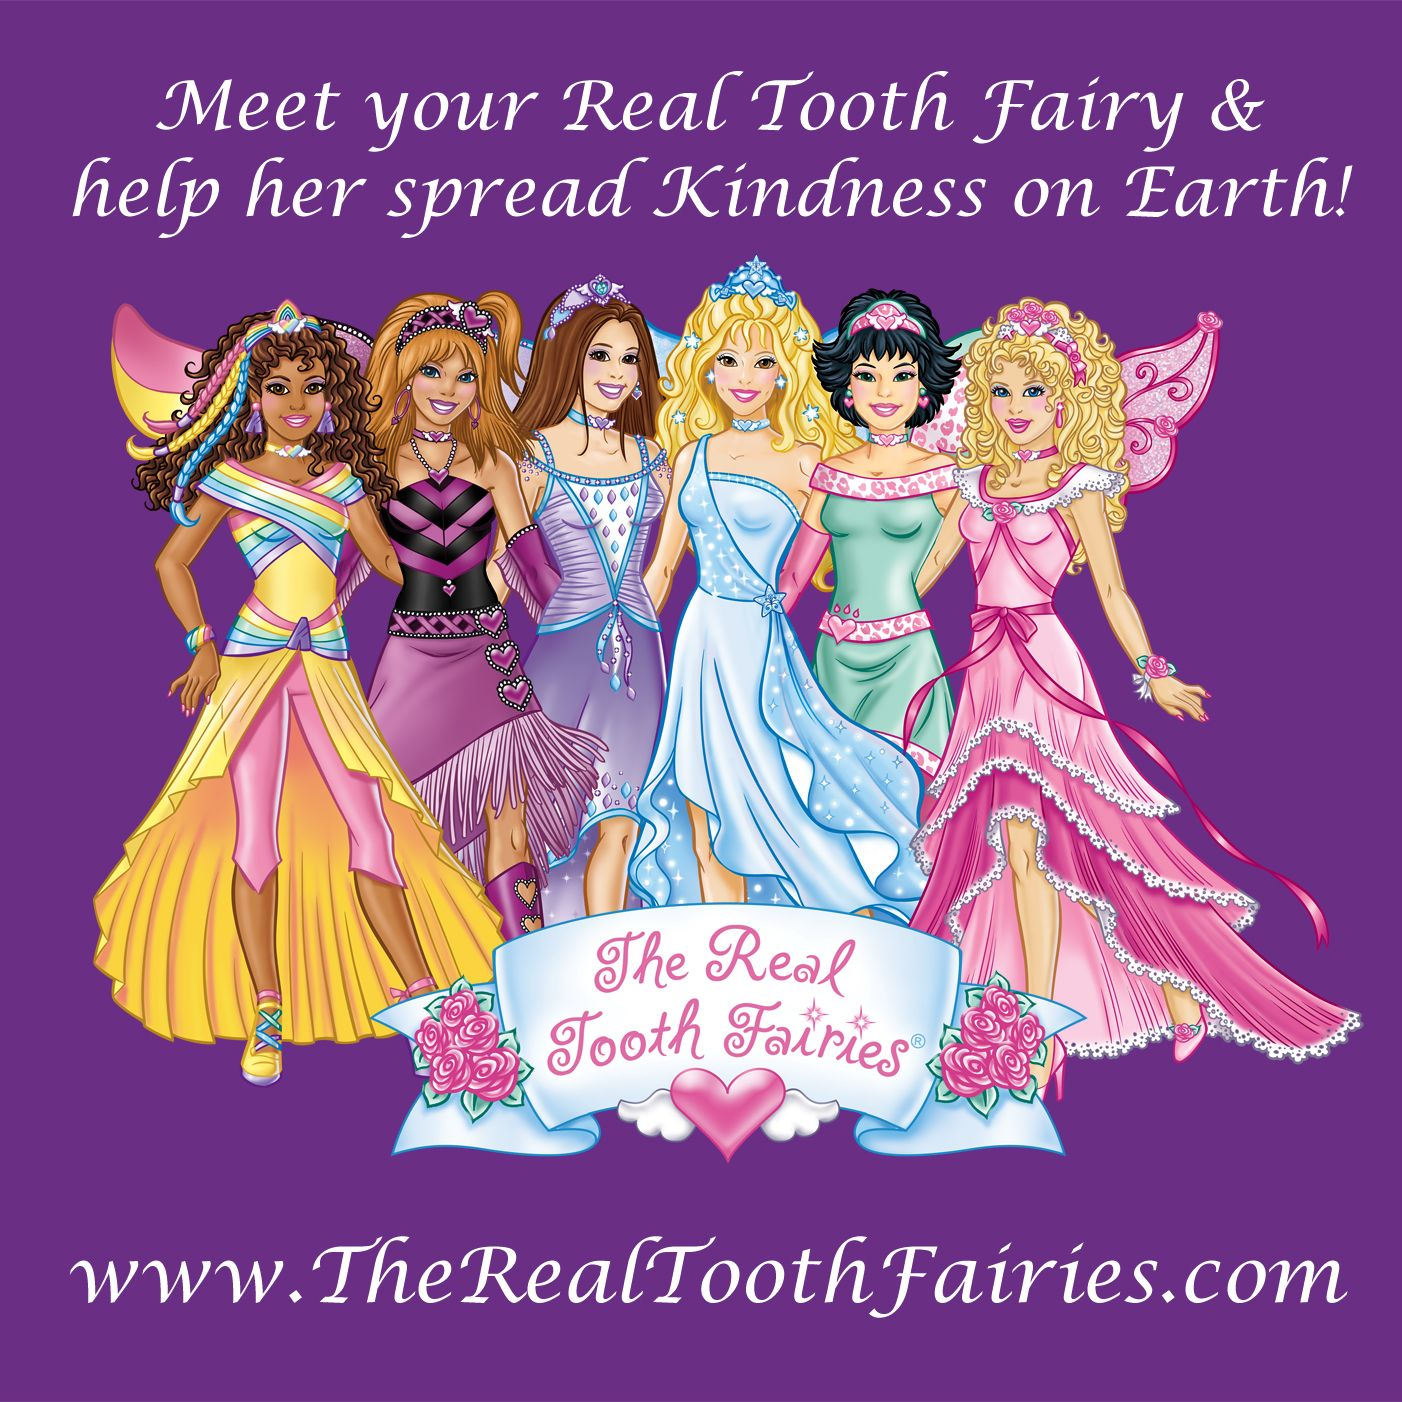 Is the Tooth Fairy Real recommend